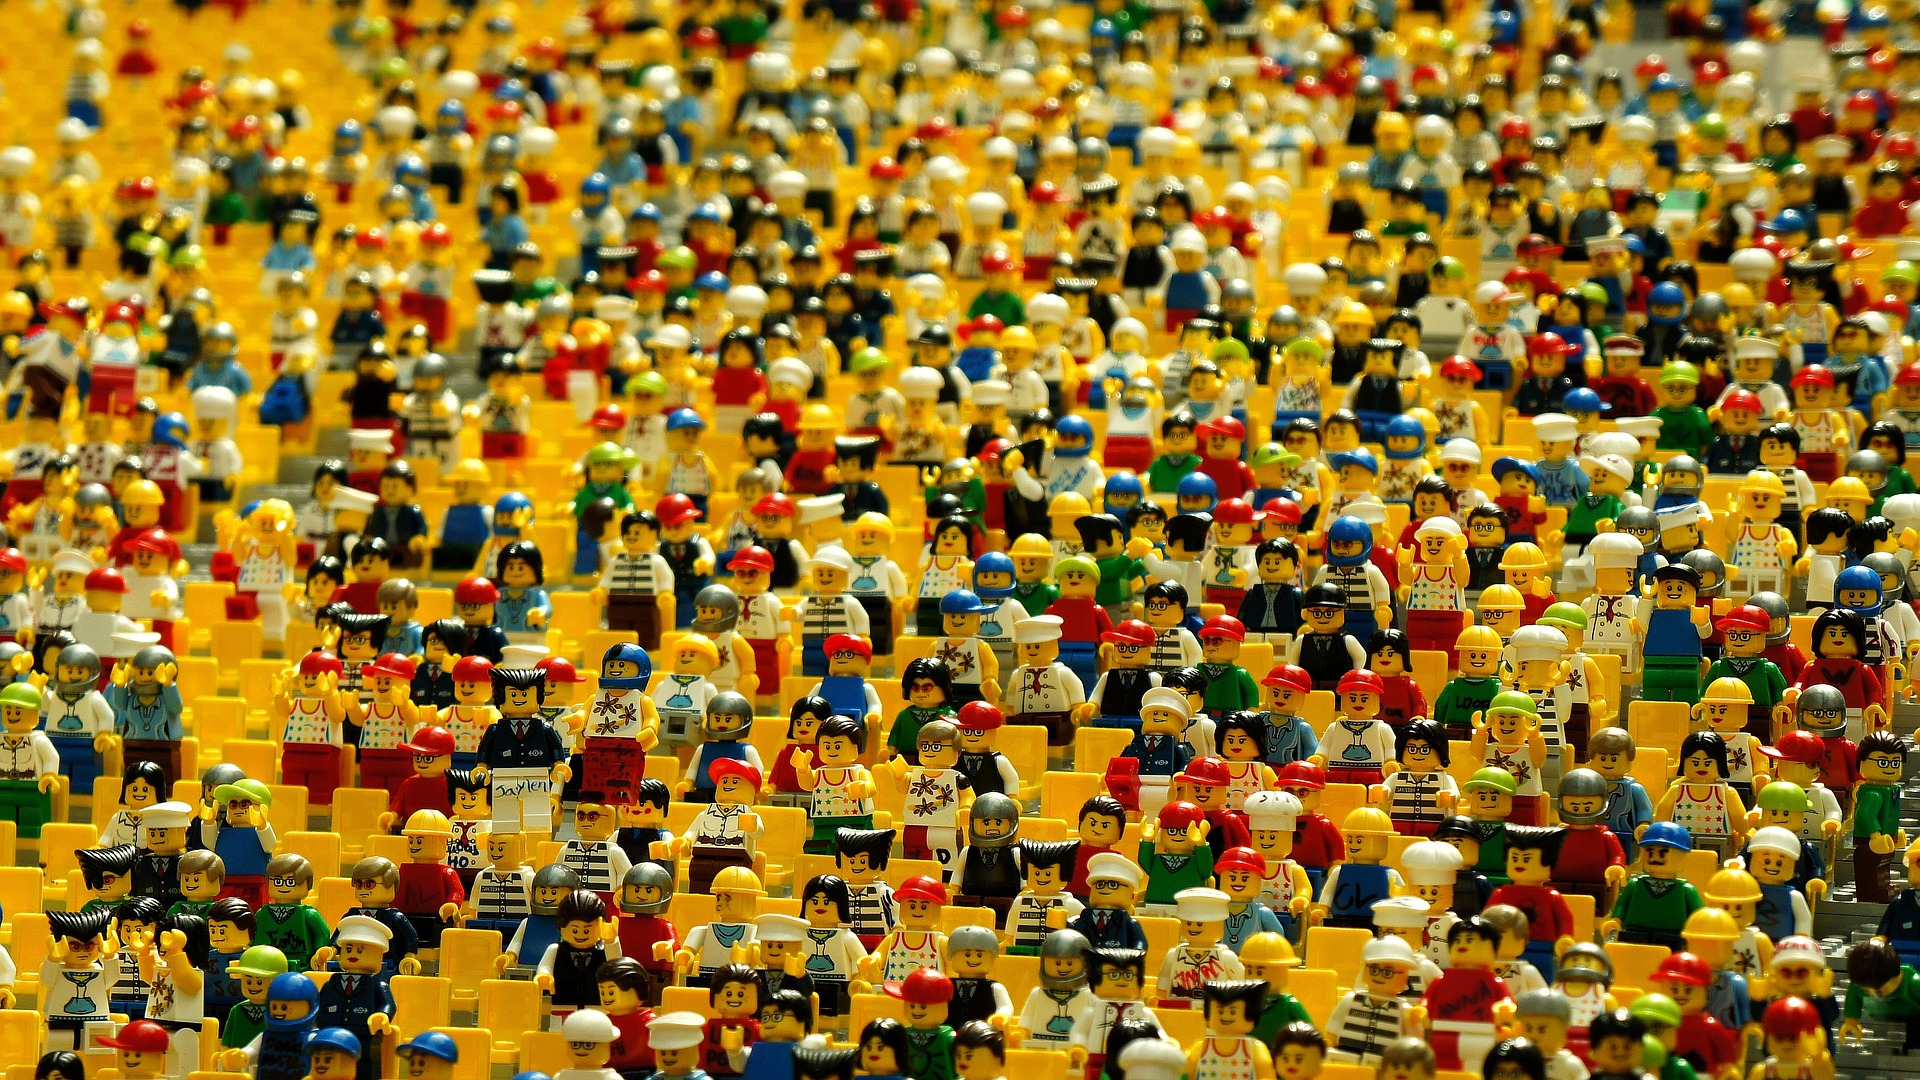 download wallpaper: Lego poppetjes wallpaper